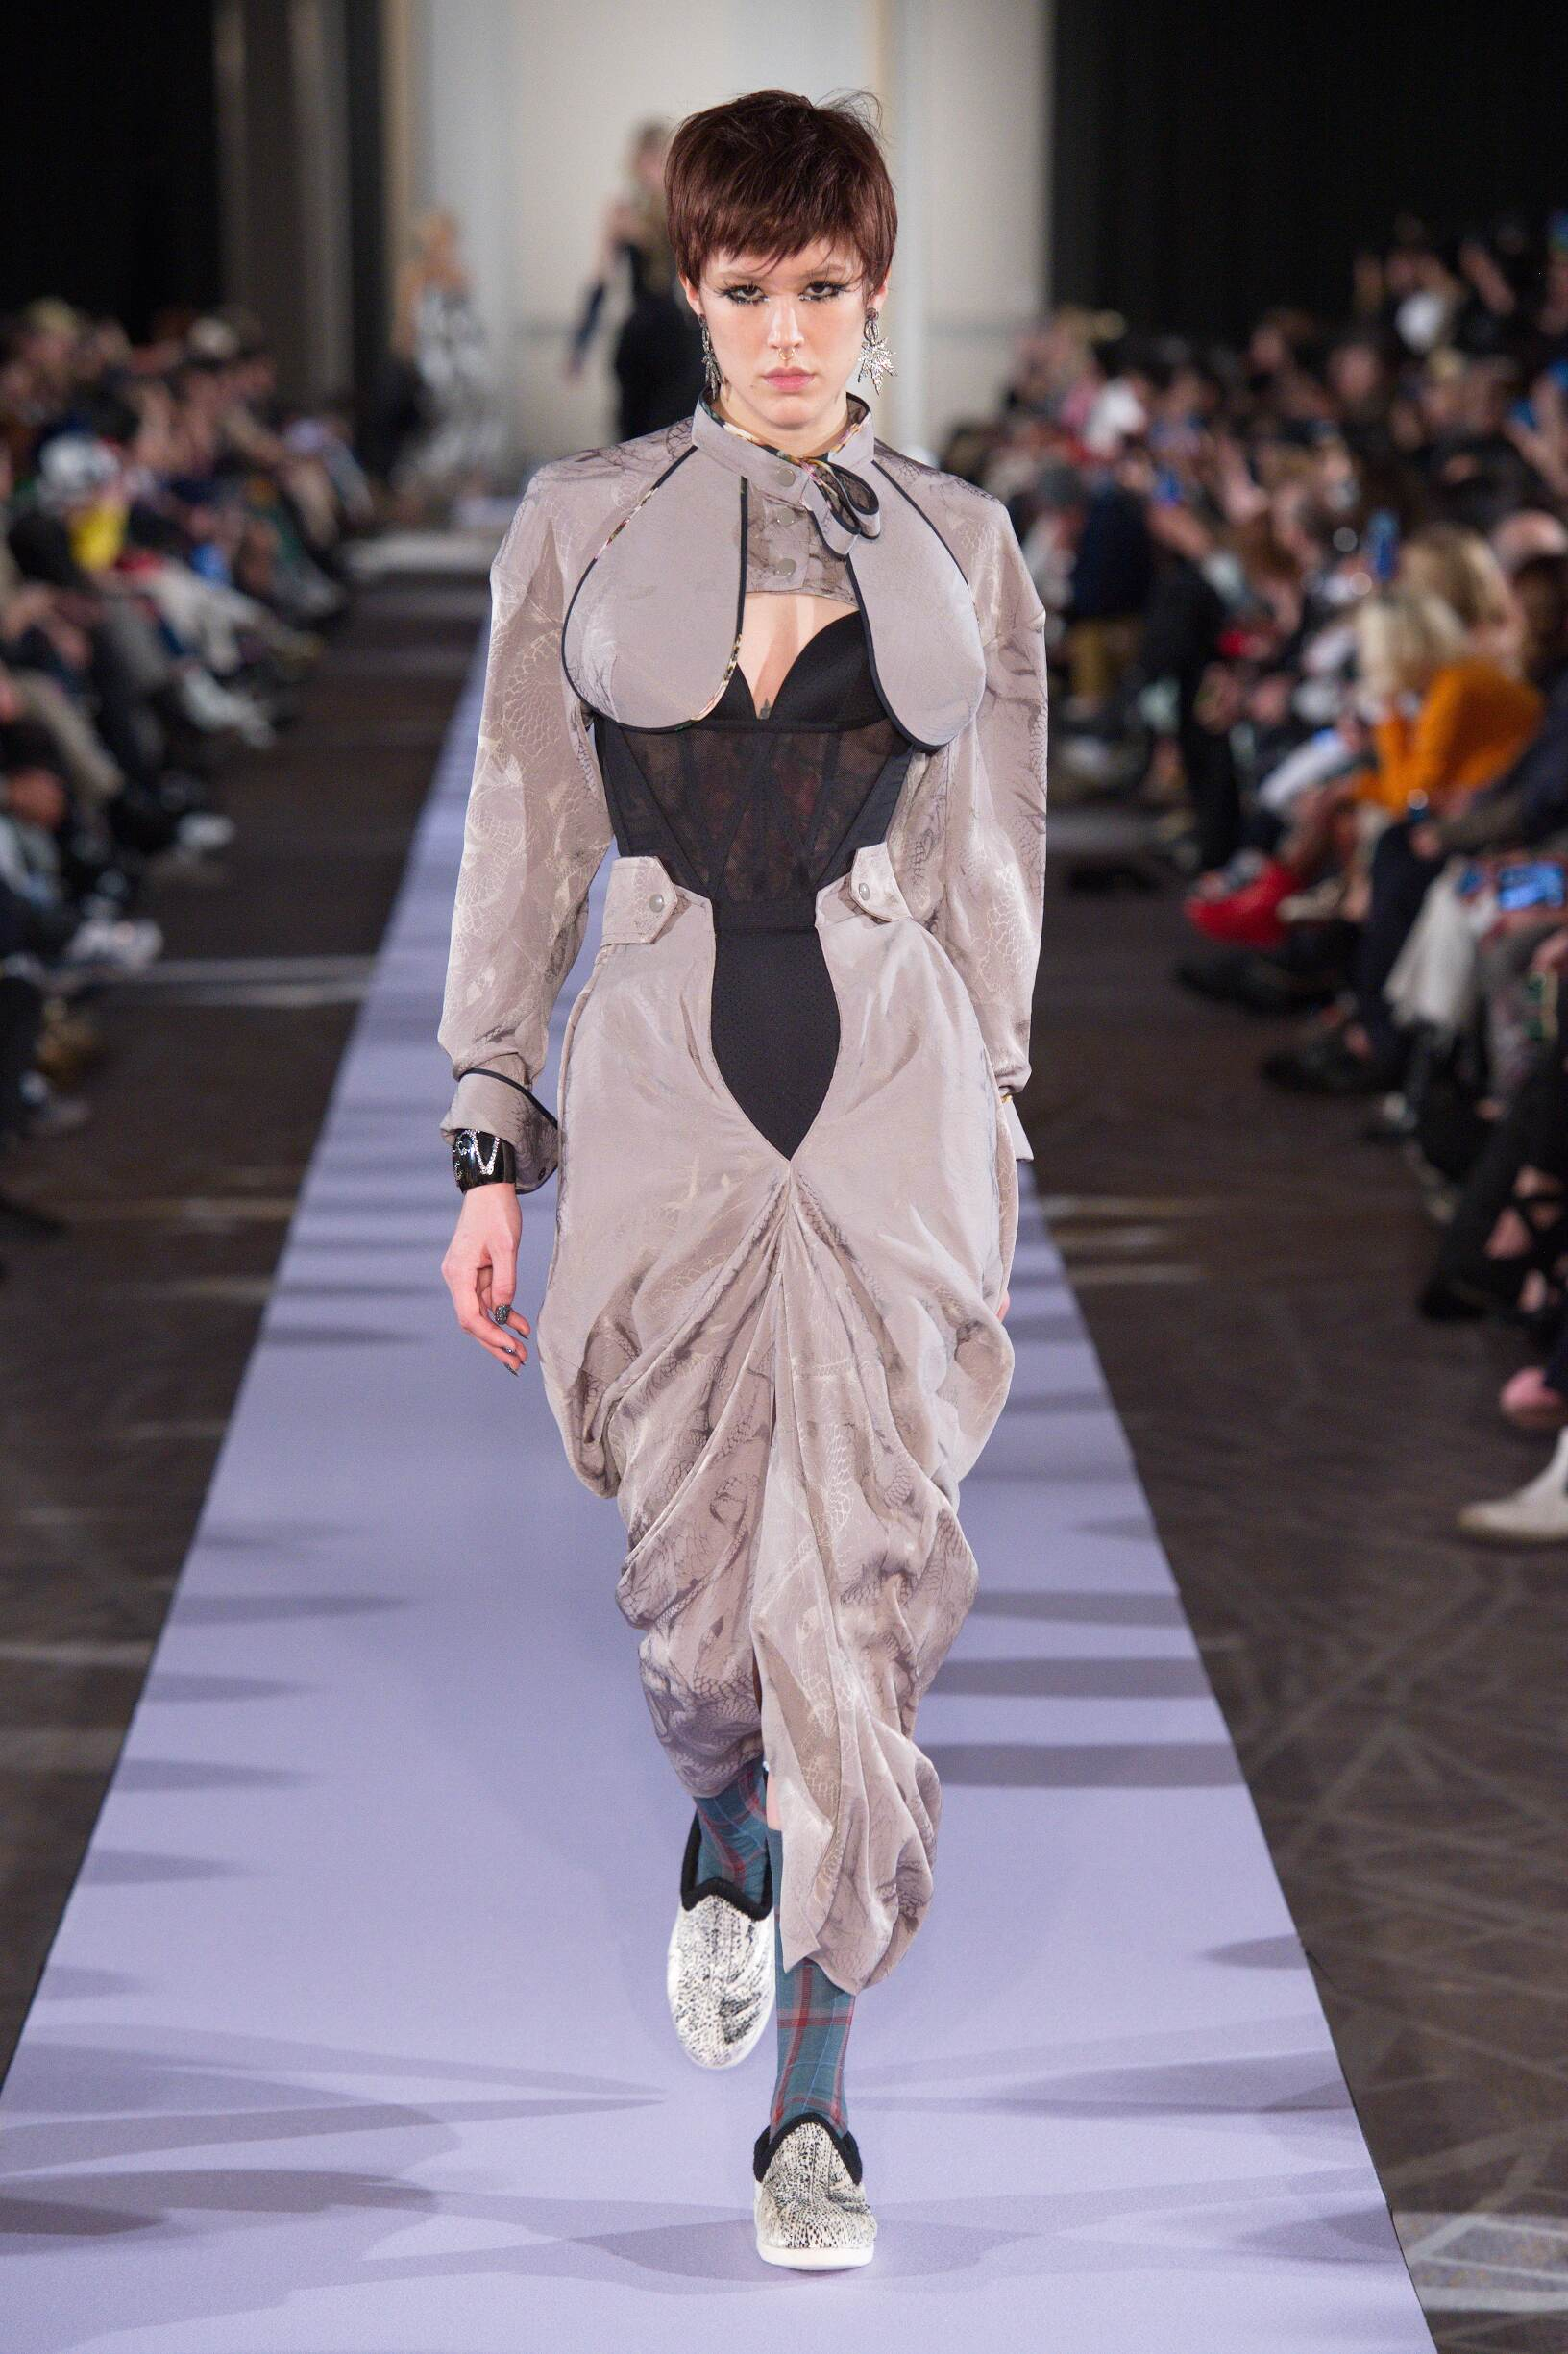 Woman FW 2019 Andreas Kronthaler for Vivienne Westwood Show Paris Fashion Week